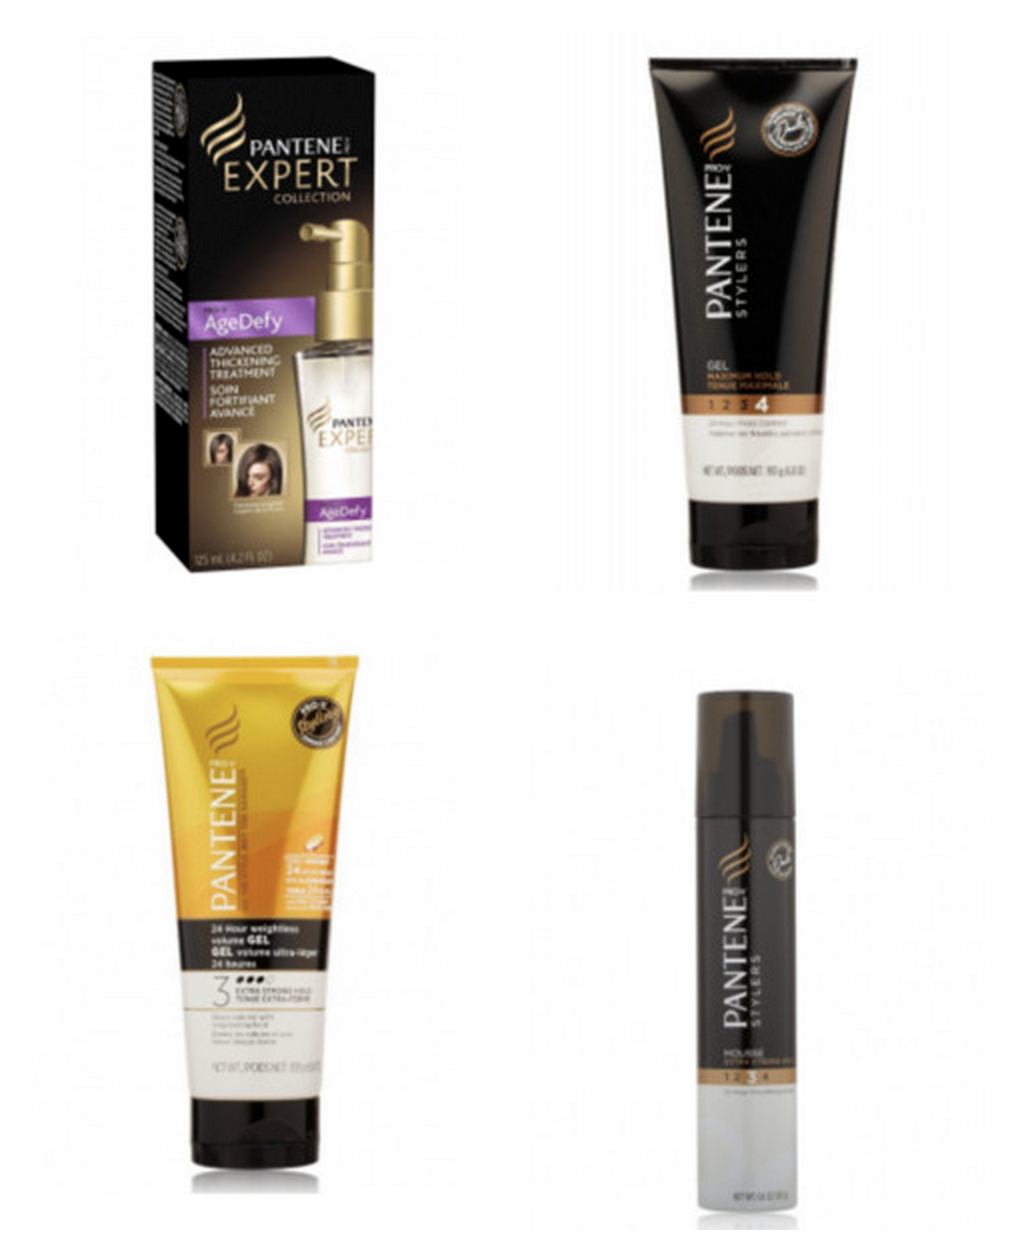 BIG Deals on Pantene Pro-V Products!